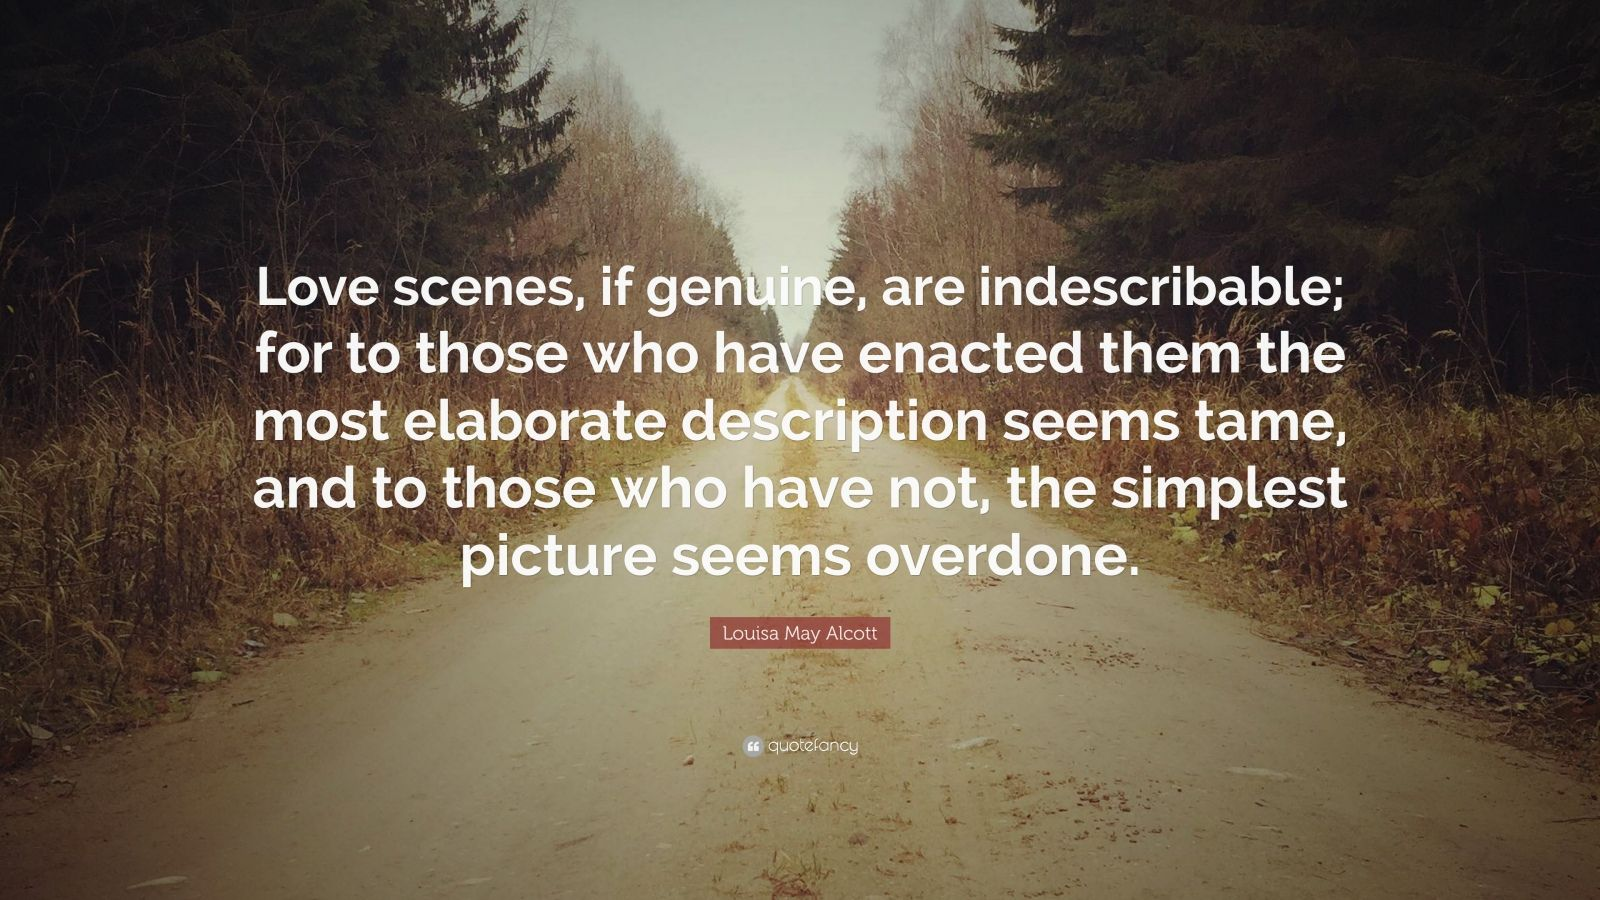 """Louisa May Alcott Quote: """"Love scenes, if genuine, are indescribable; for to those who have enacted them the most elaborate description seems tame, and to those who have not, the simplest picture seems overdone."""""""